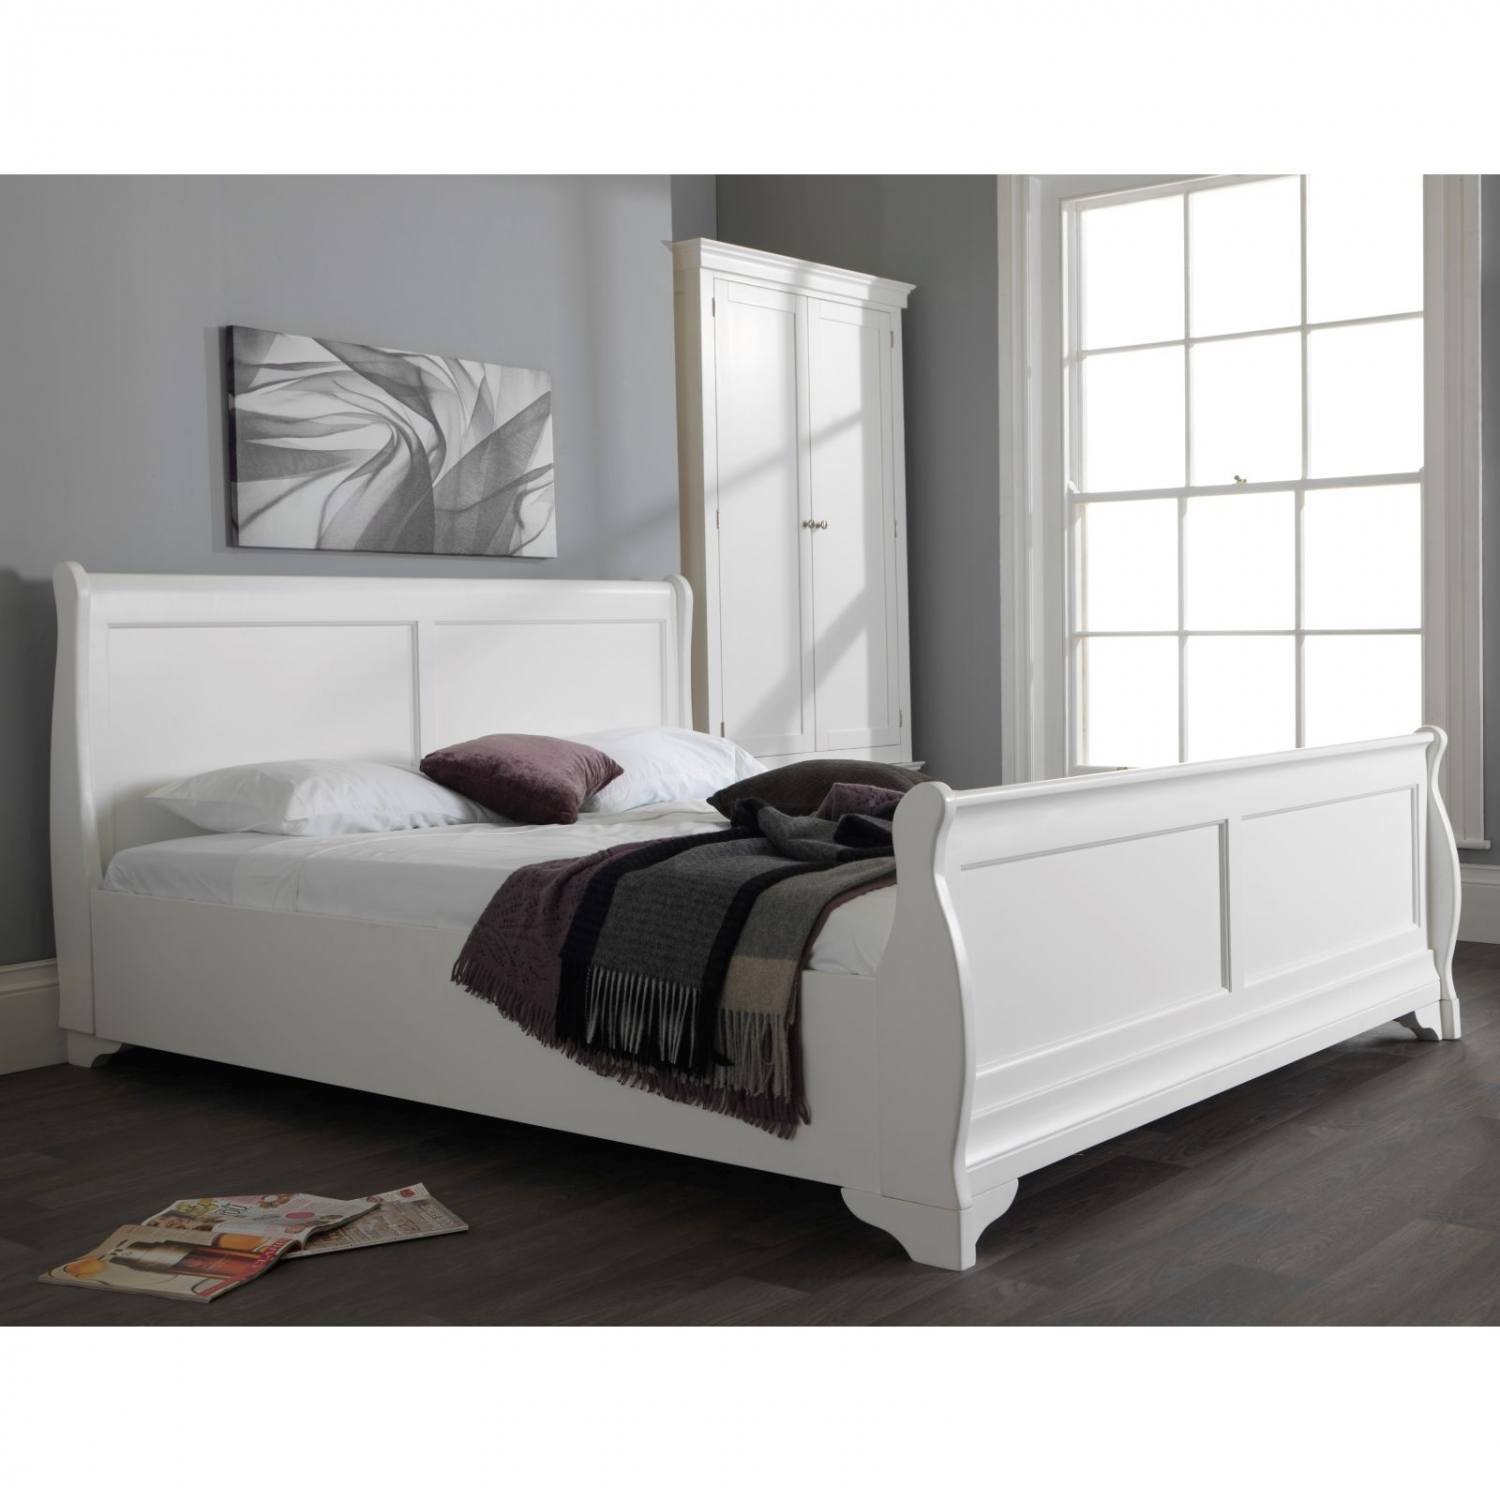 Jolie Oak White Painted Bedroom Furniture Super King Size Sleigh